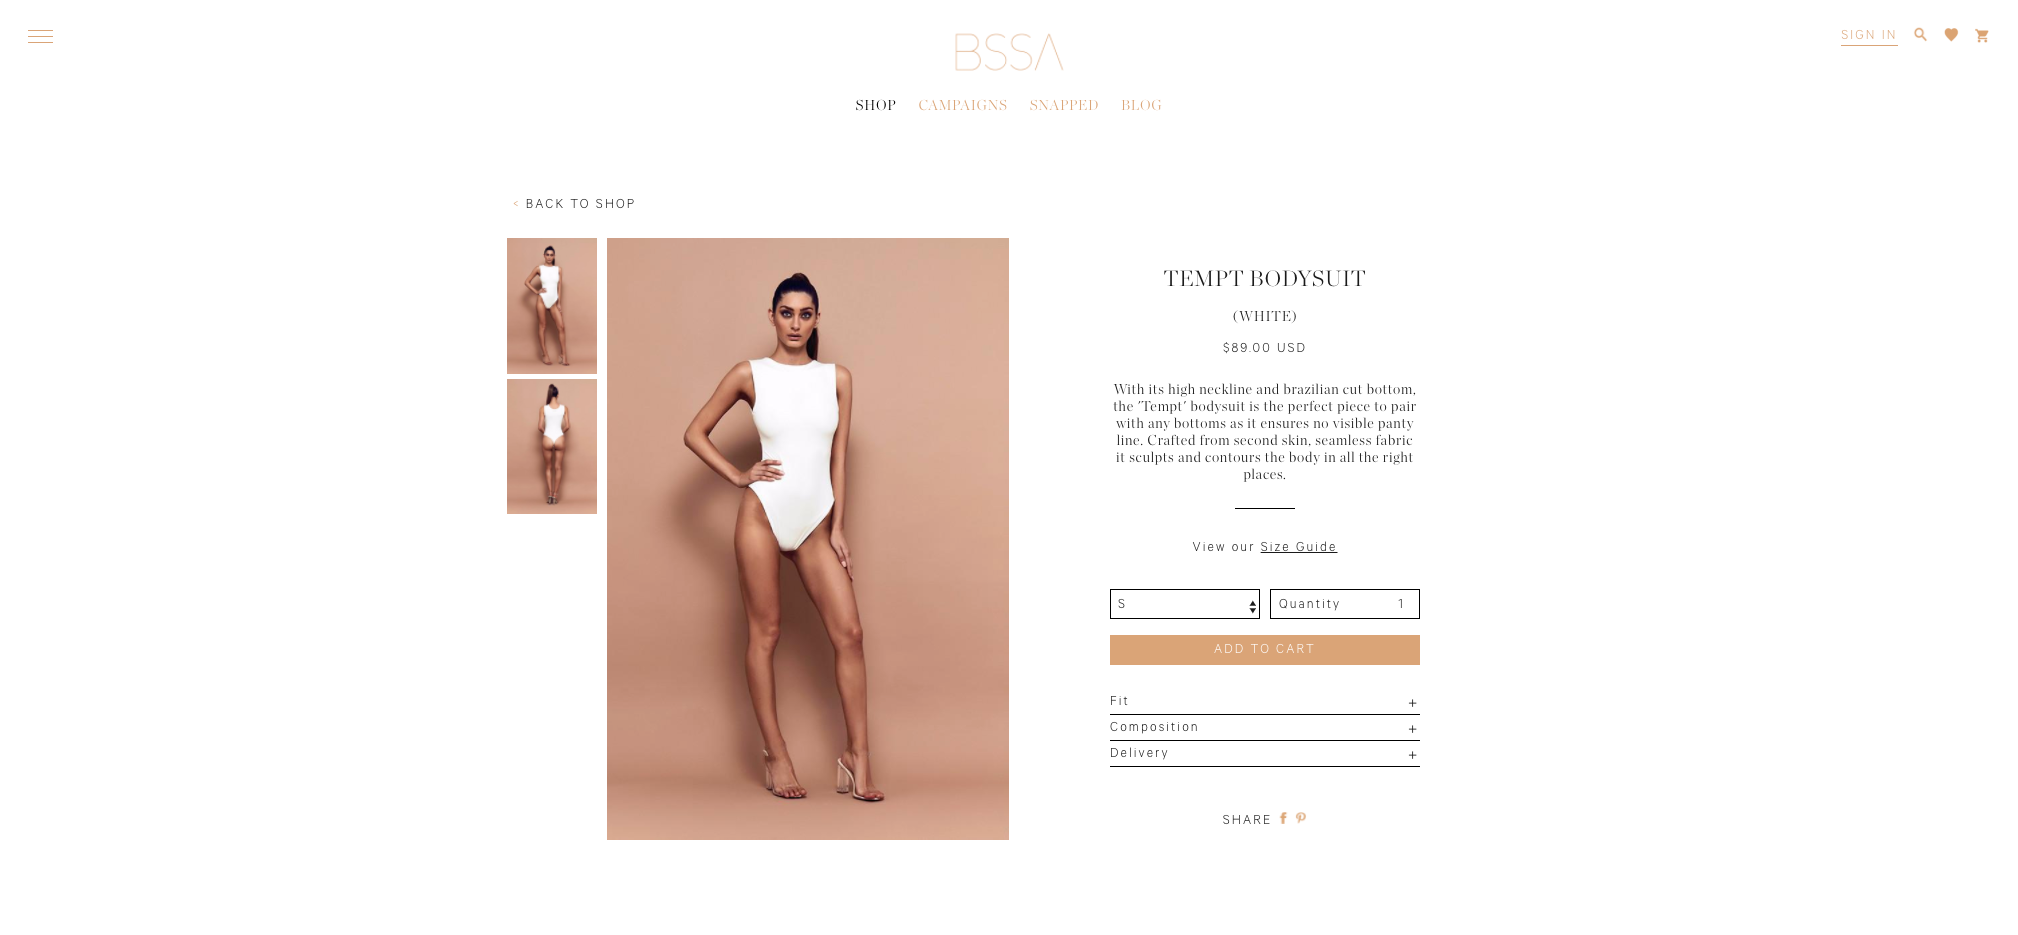 BSSA product page